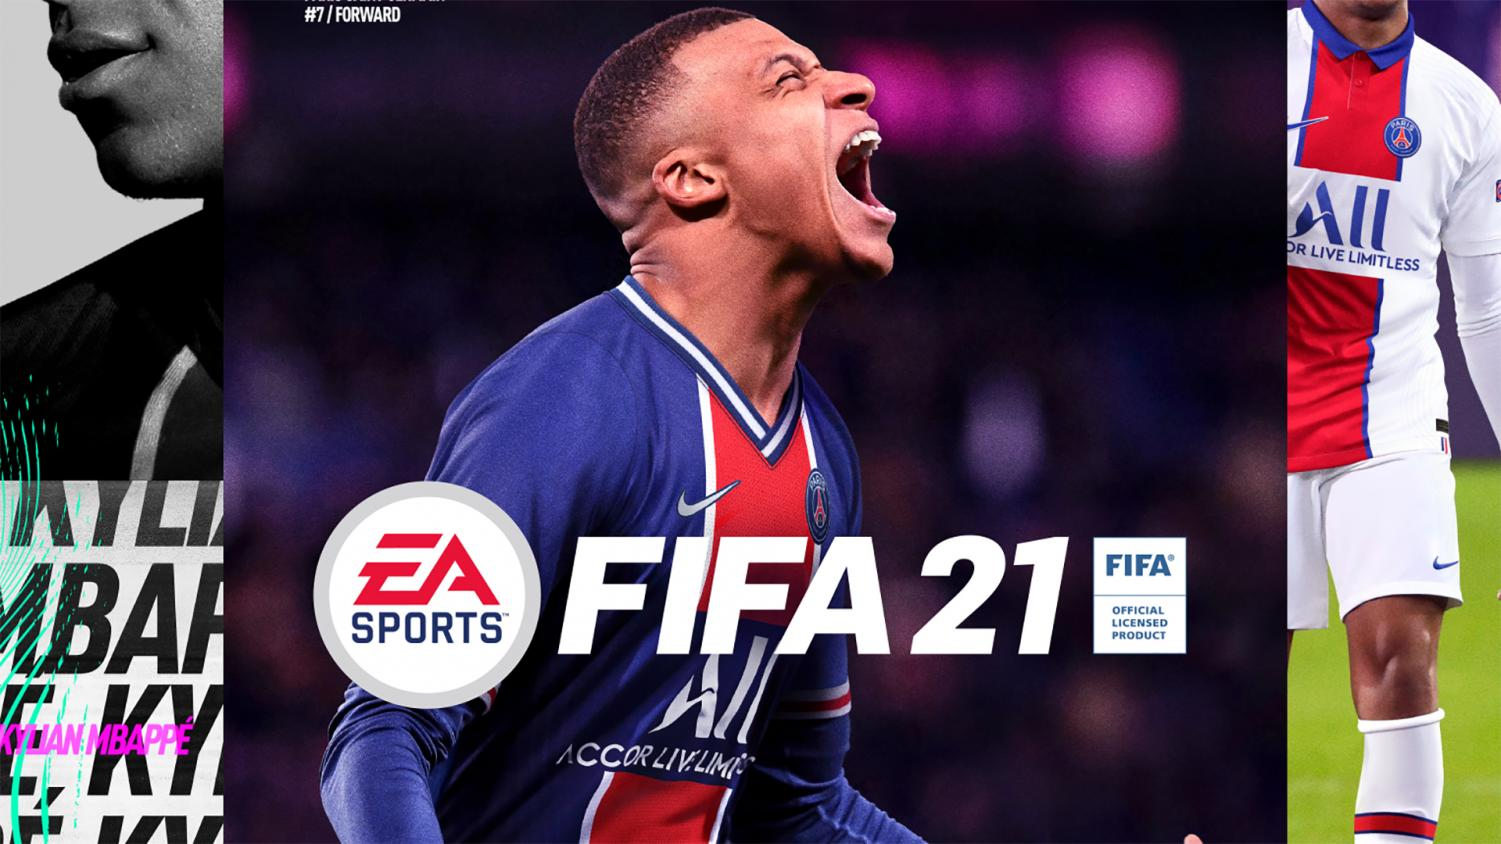 """New cover star, Kylian Mbappe, rocks his PSG colors in """"FIFA 21""""."""